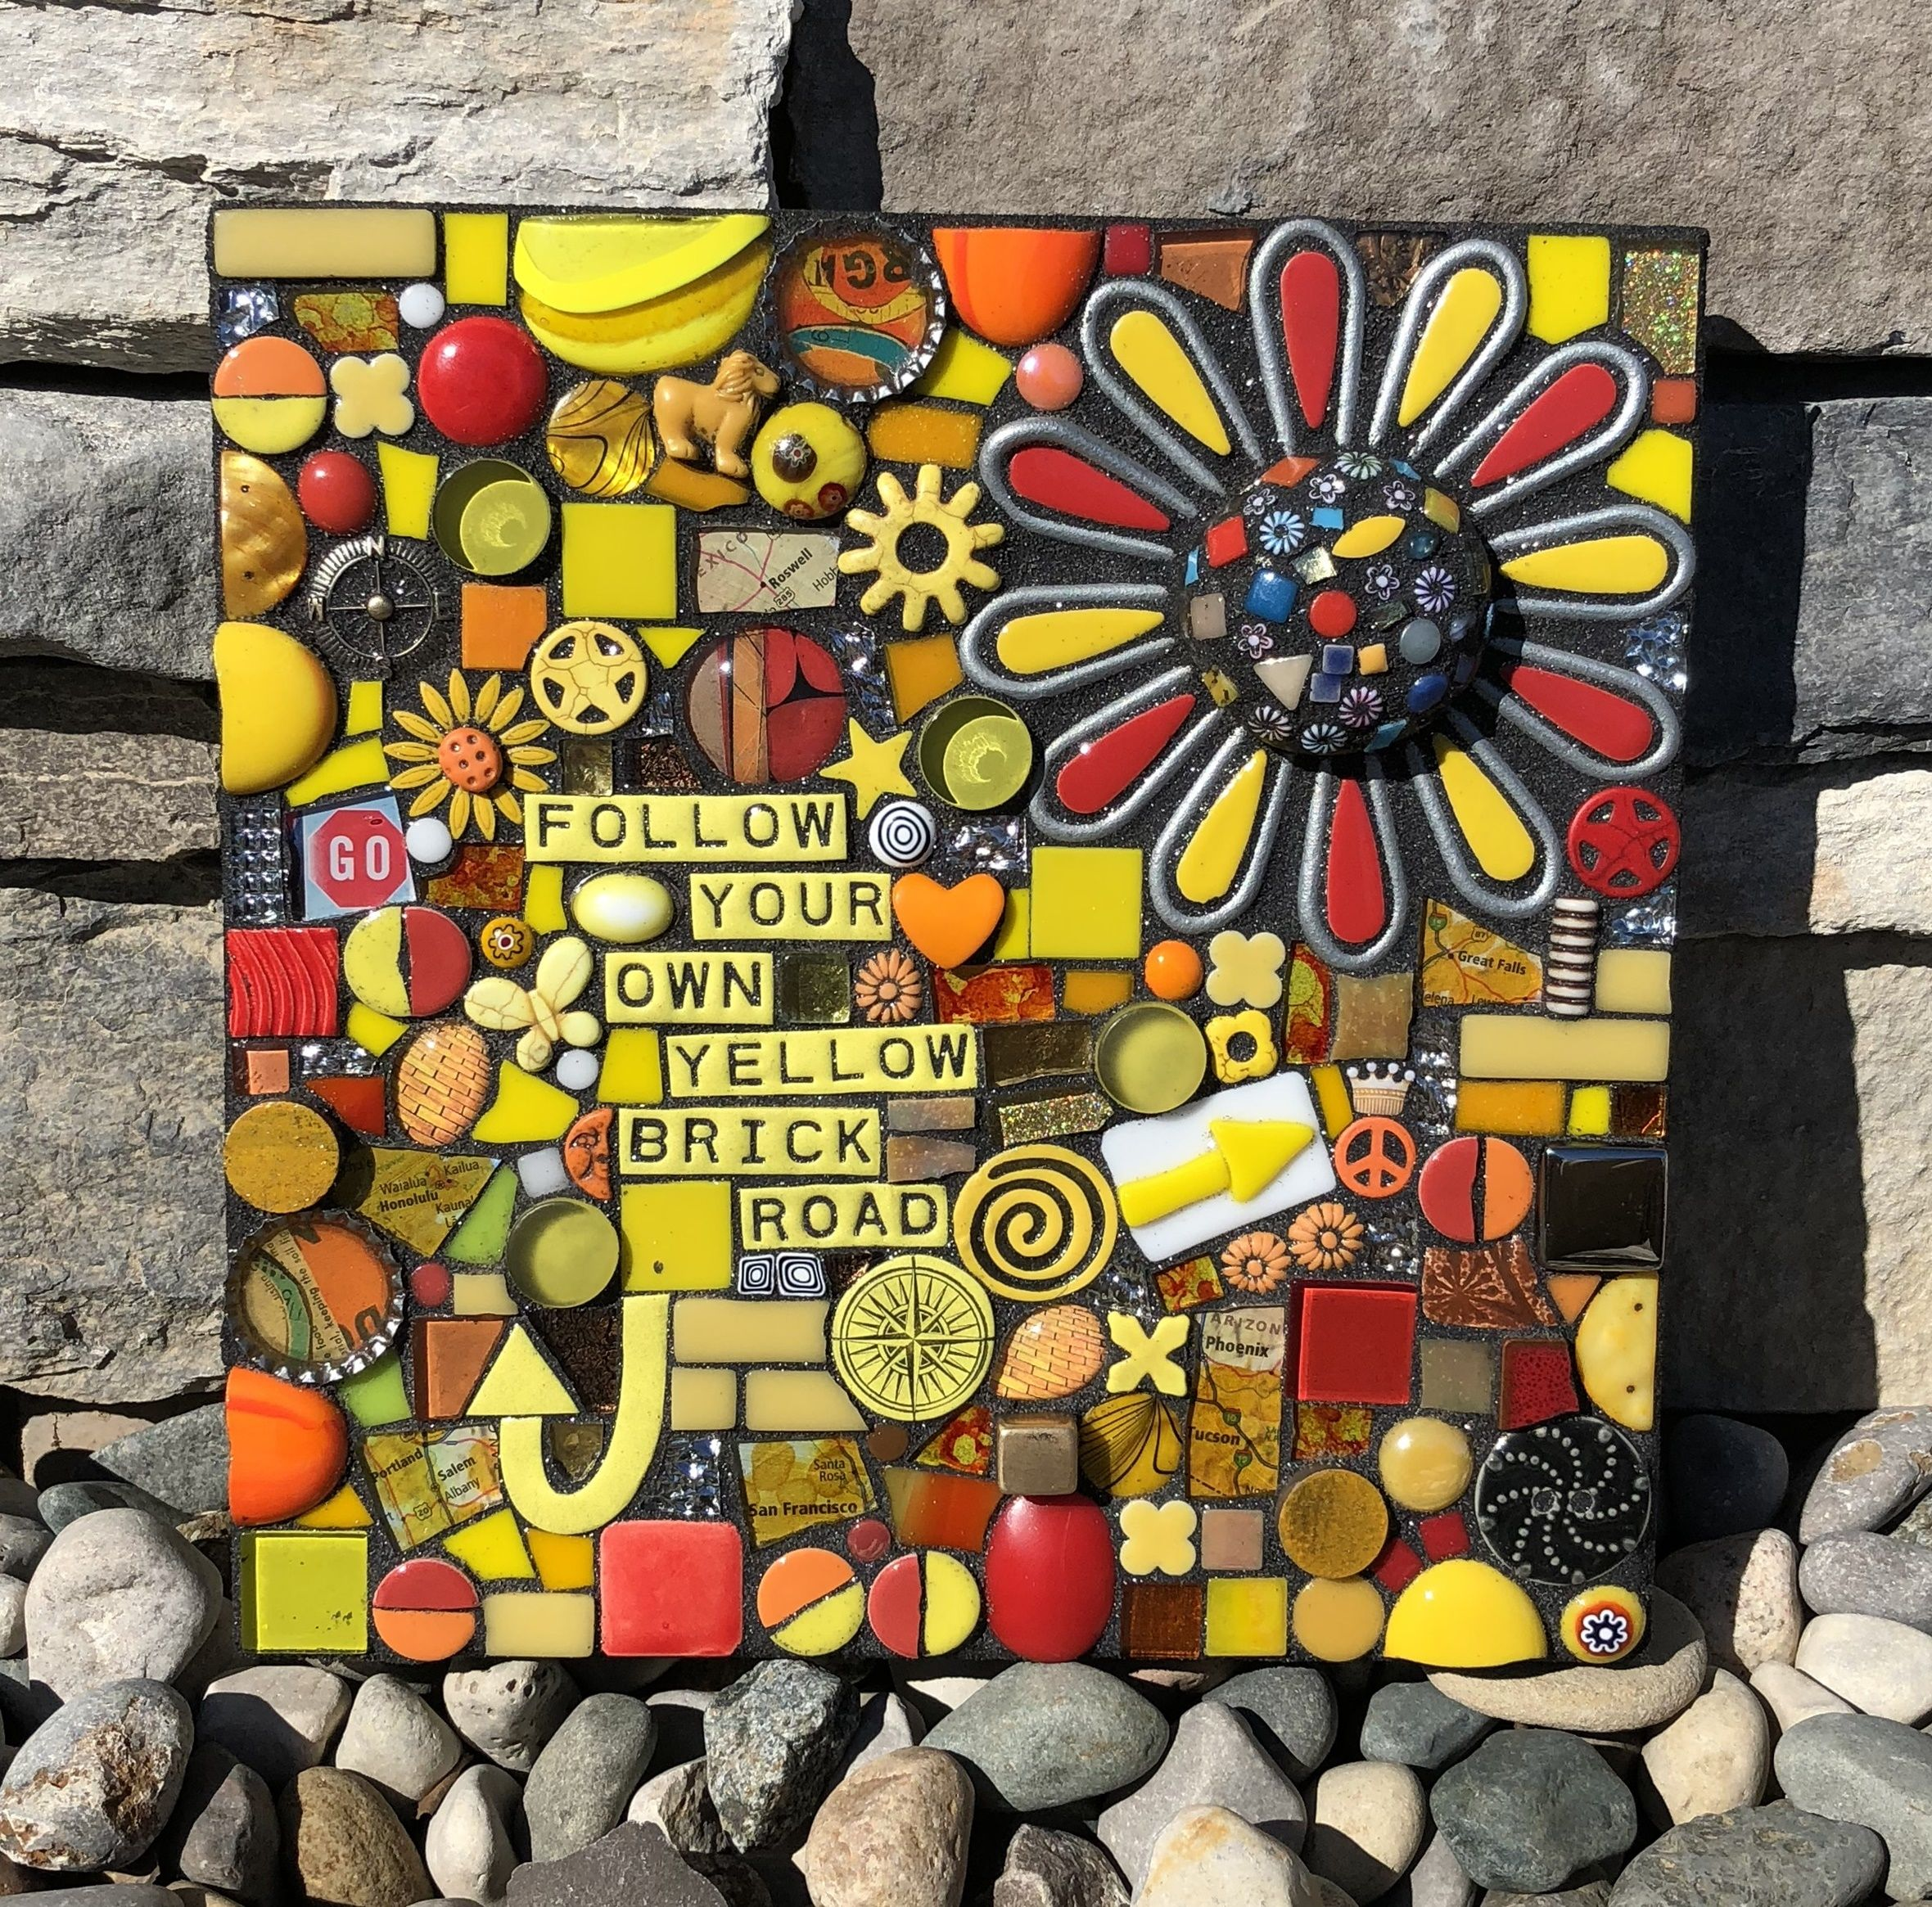 FOLLOW YOUR OWN YELLOW BRICK ROAD handmade mixed media mosaic yellow ...